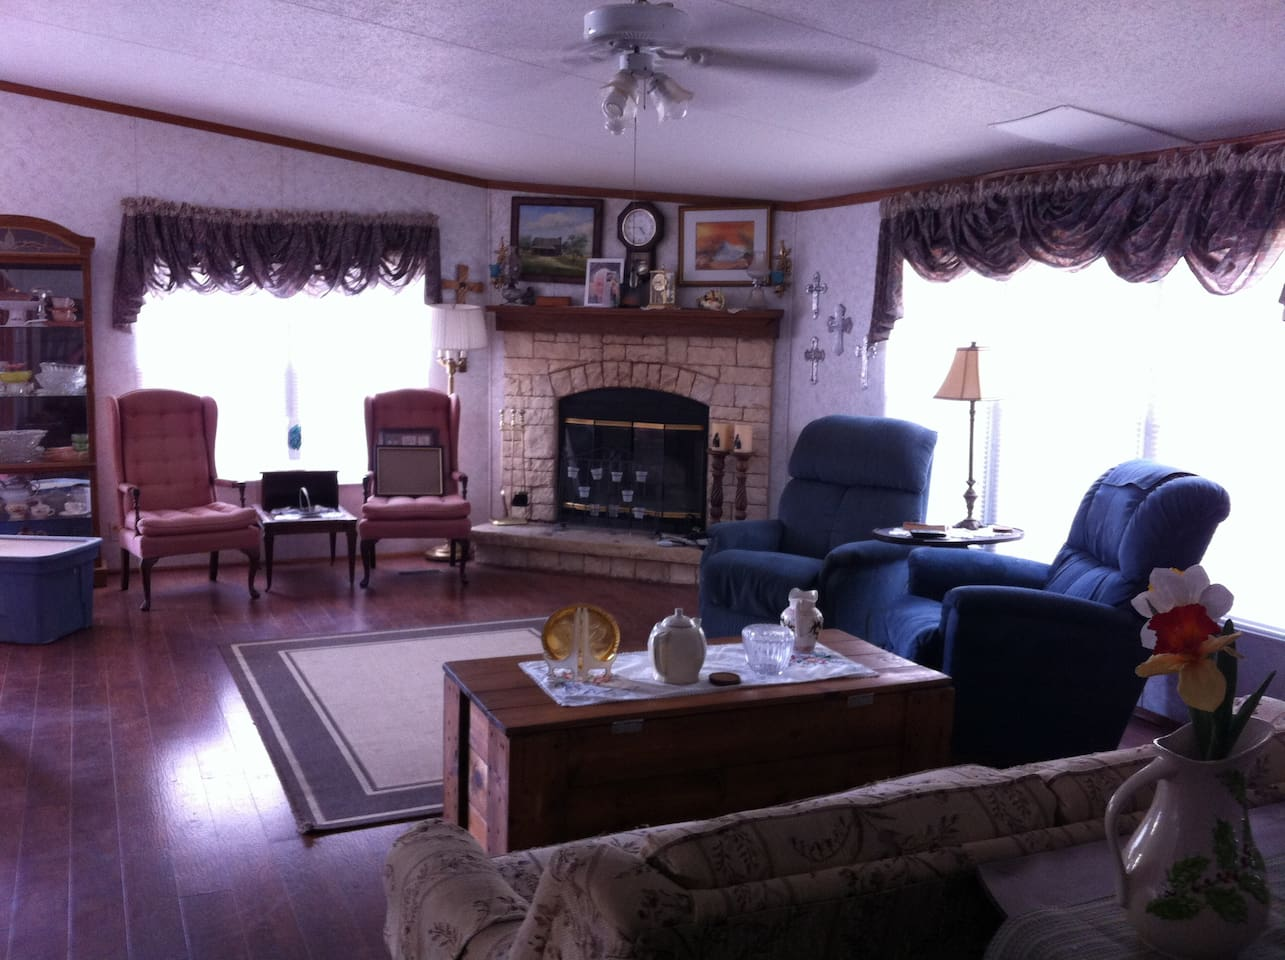 Comfortable sitting in living room - large TV, couch, recliners.